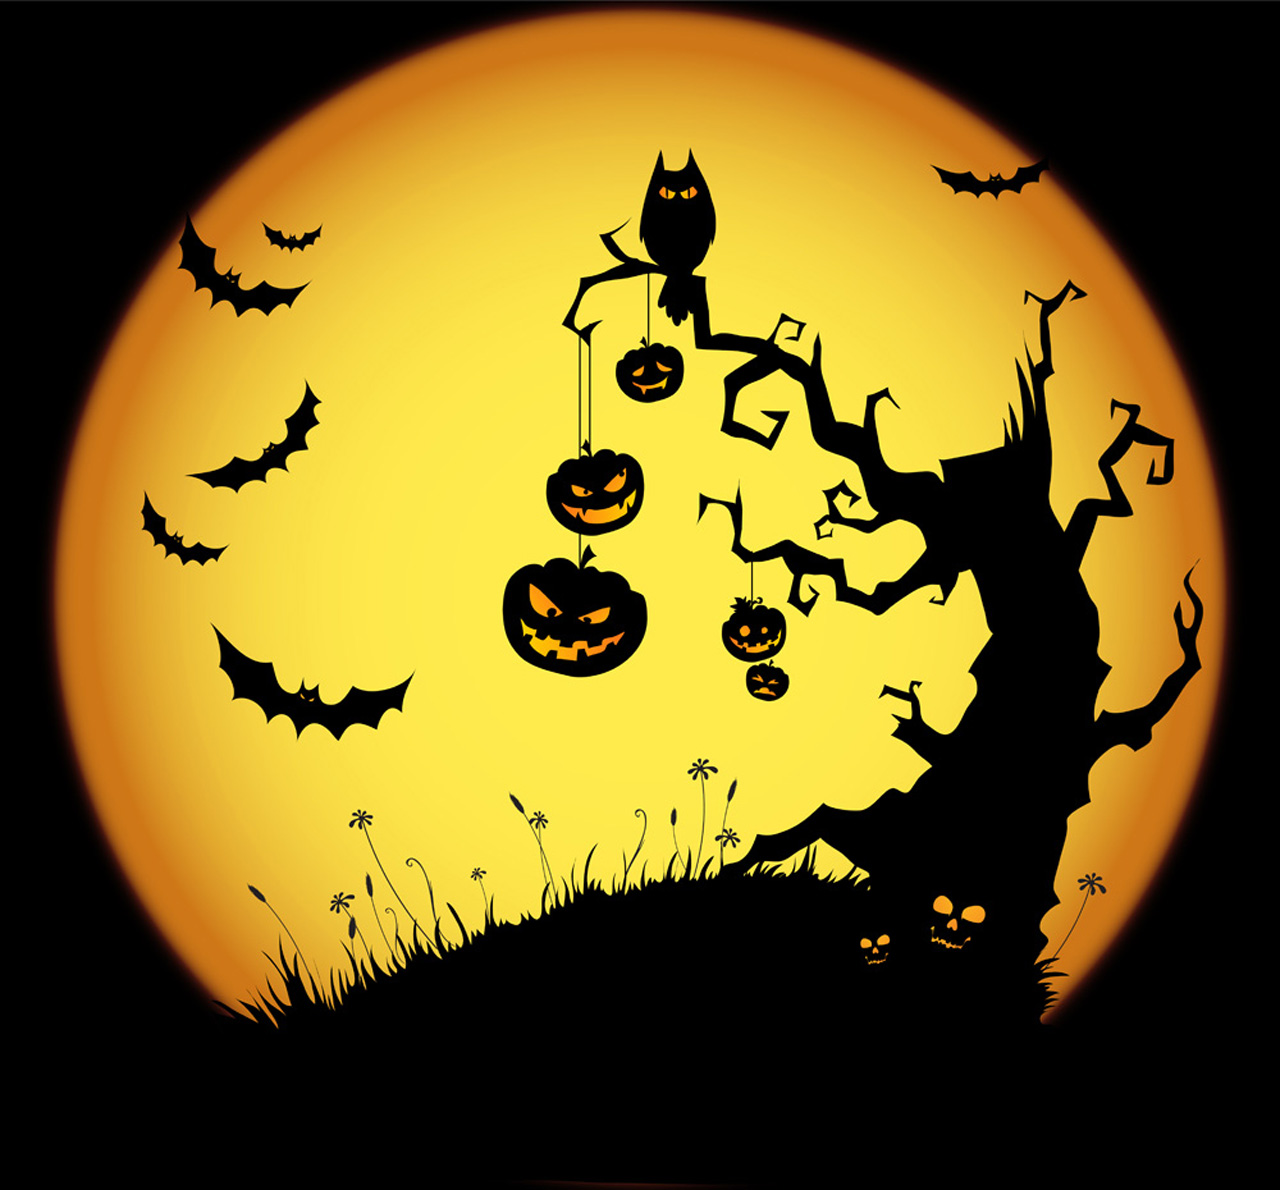 Cute Halloween Wallpapers For Android at Cool Monodomo 1280x1190